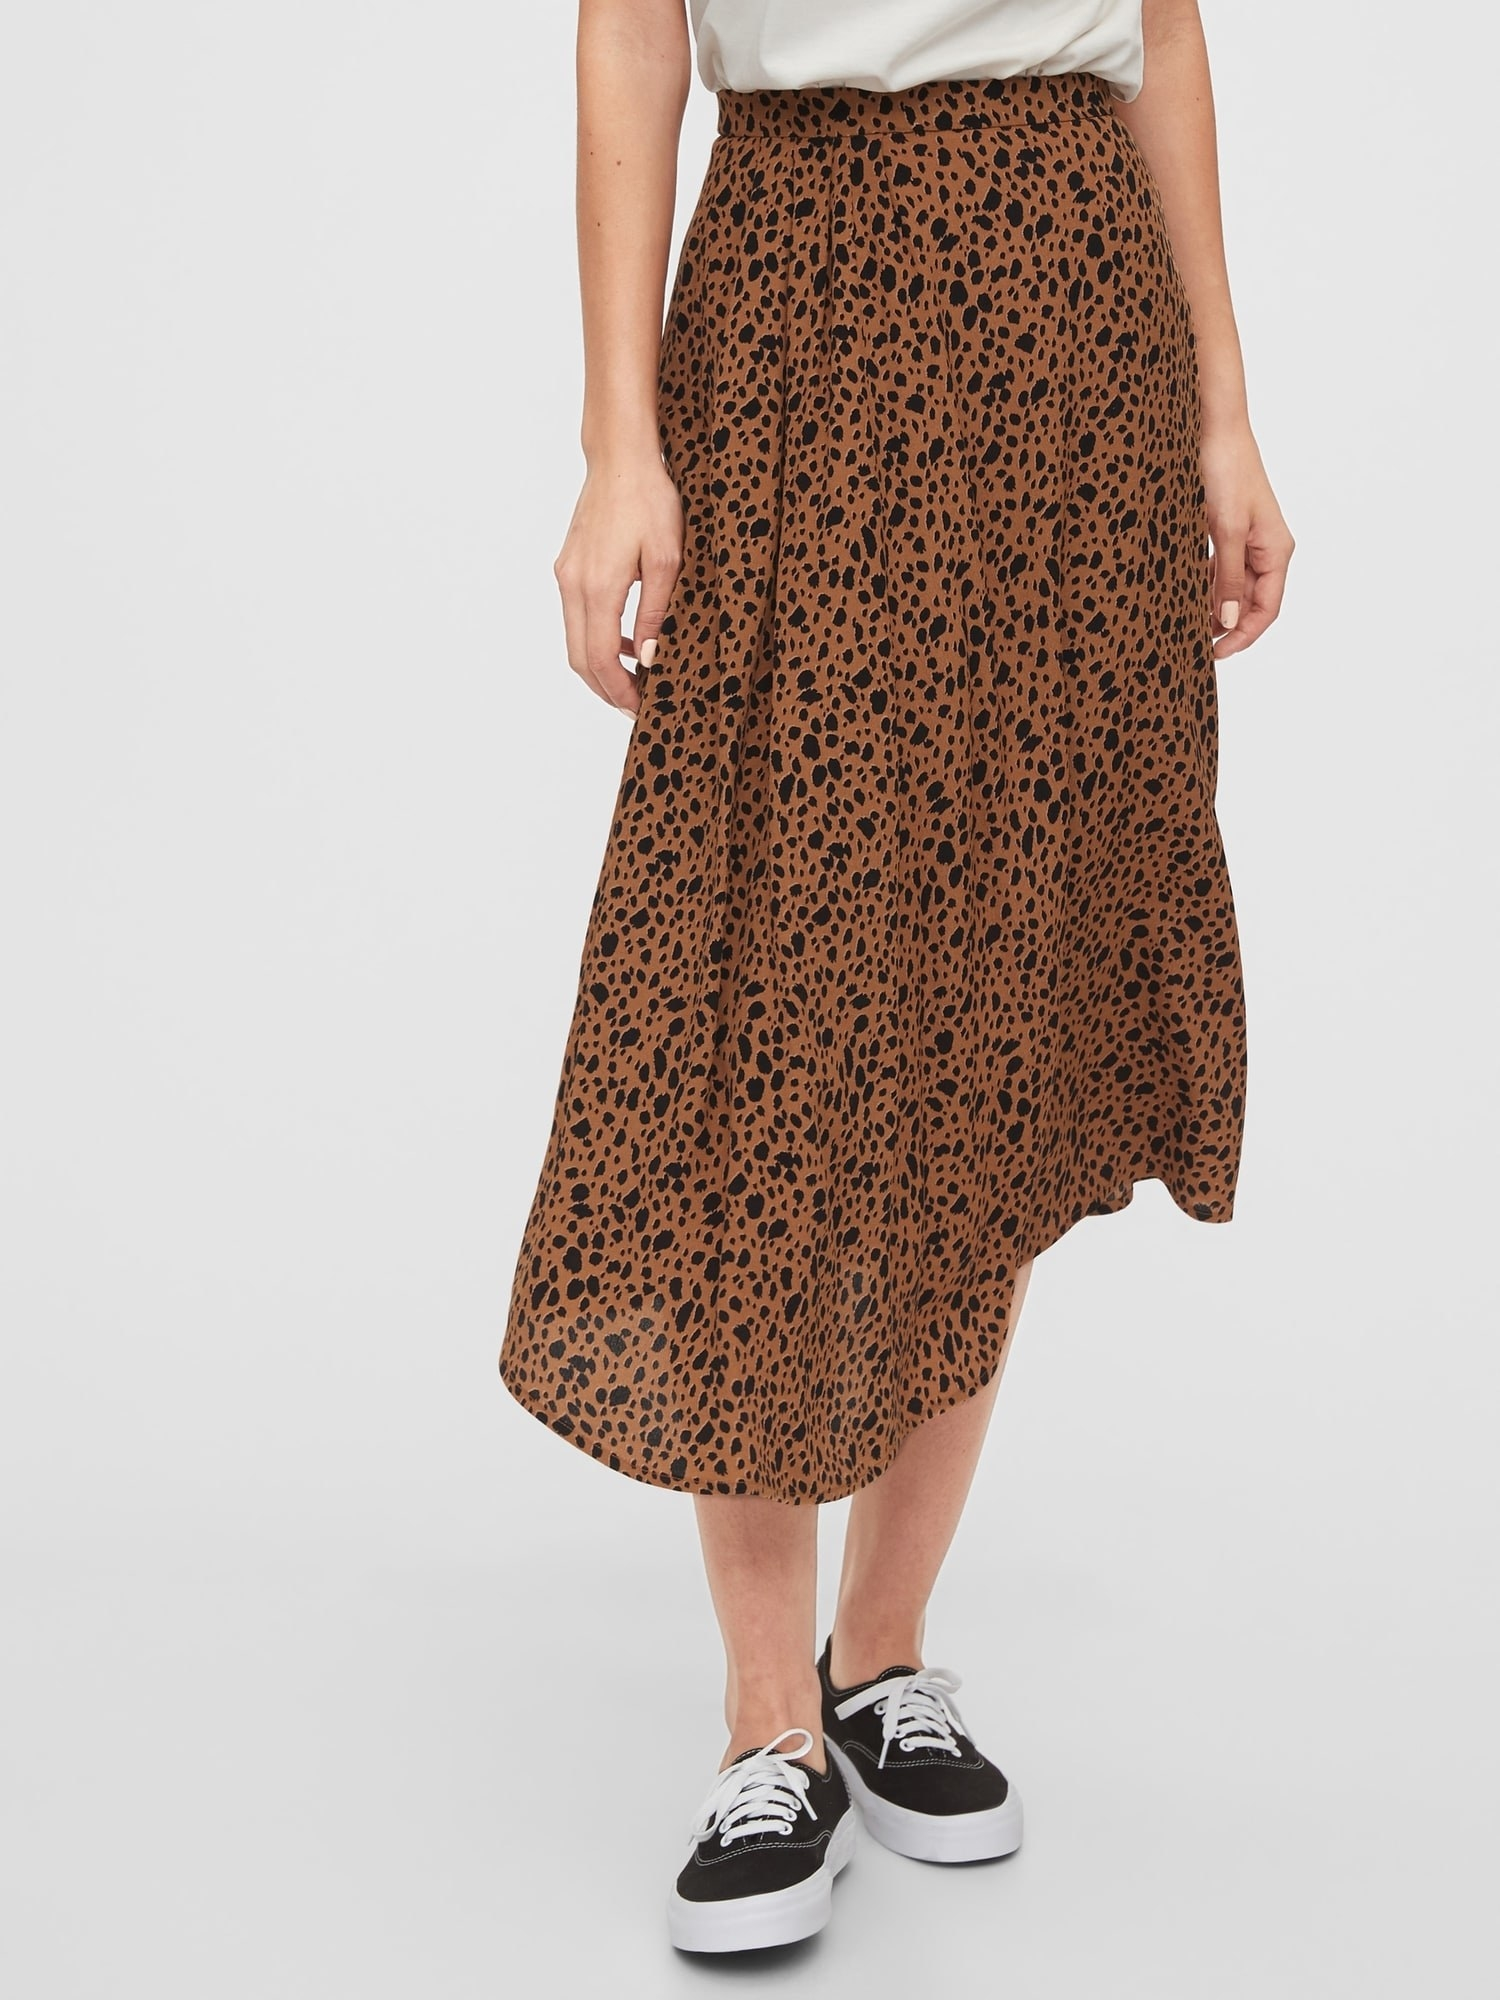 a model in the brown skirt